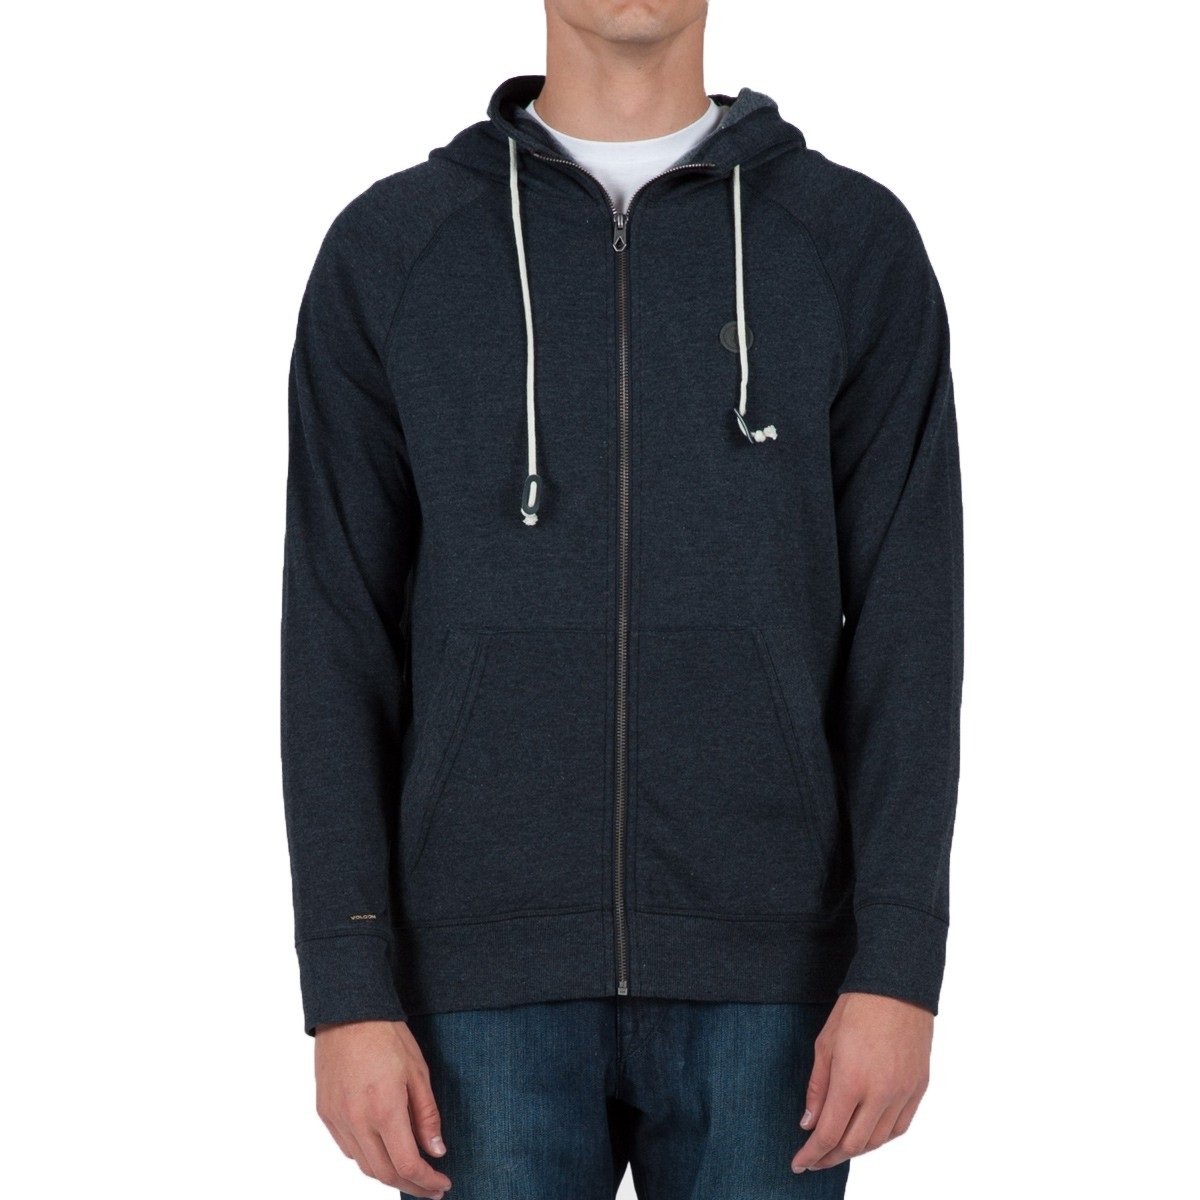 The Core Basics Zip Hoodie is a 60% cotton, 40% polyester fleece hoodie with a full zip, front pockets, and left chest logo embroidery. Model is 6 feet tall and wearing a size Medium.4/4(13).